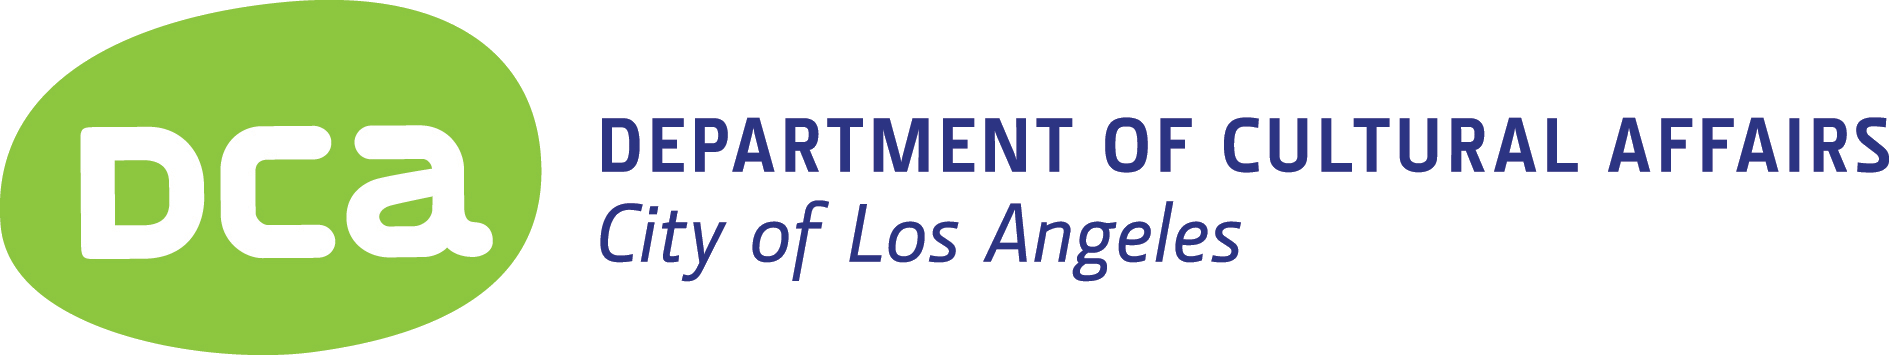 Department of Cultural Affairs - City of Los Angeles